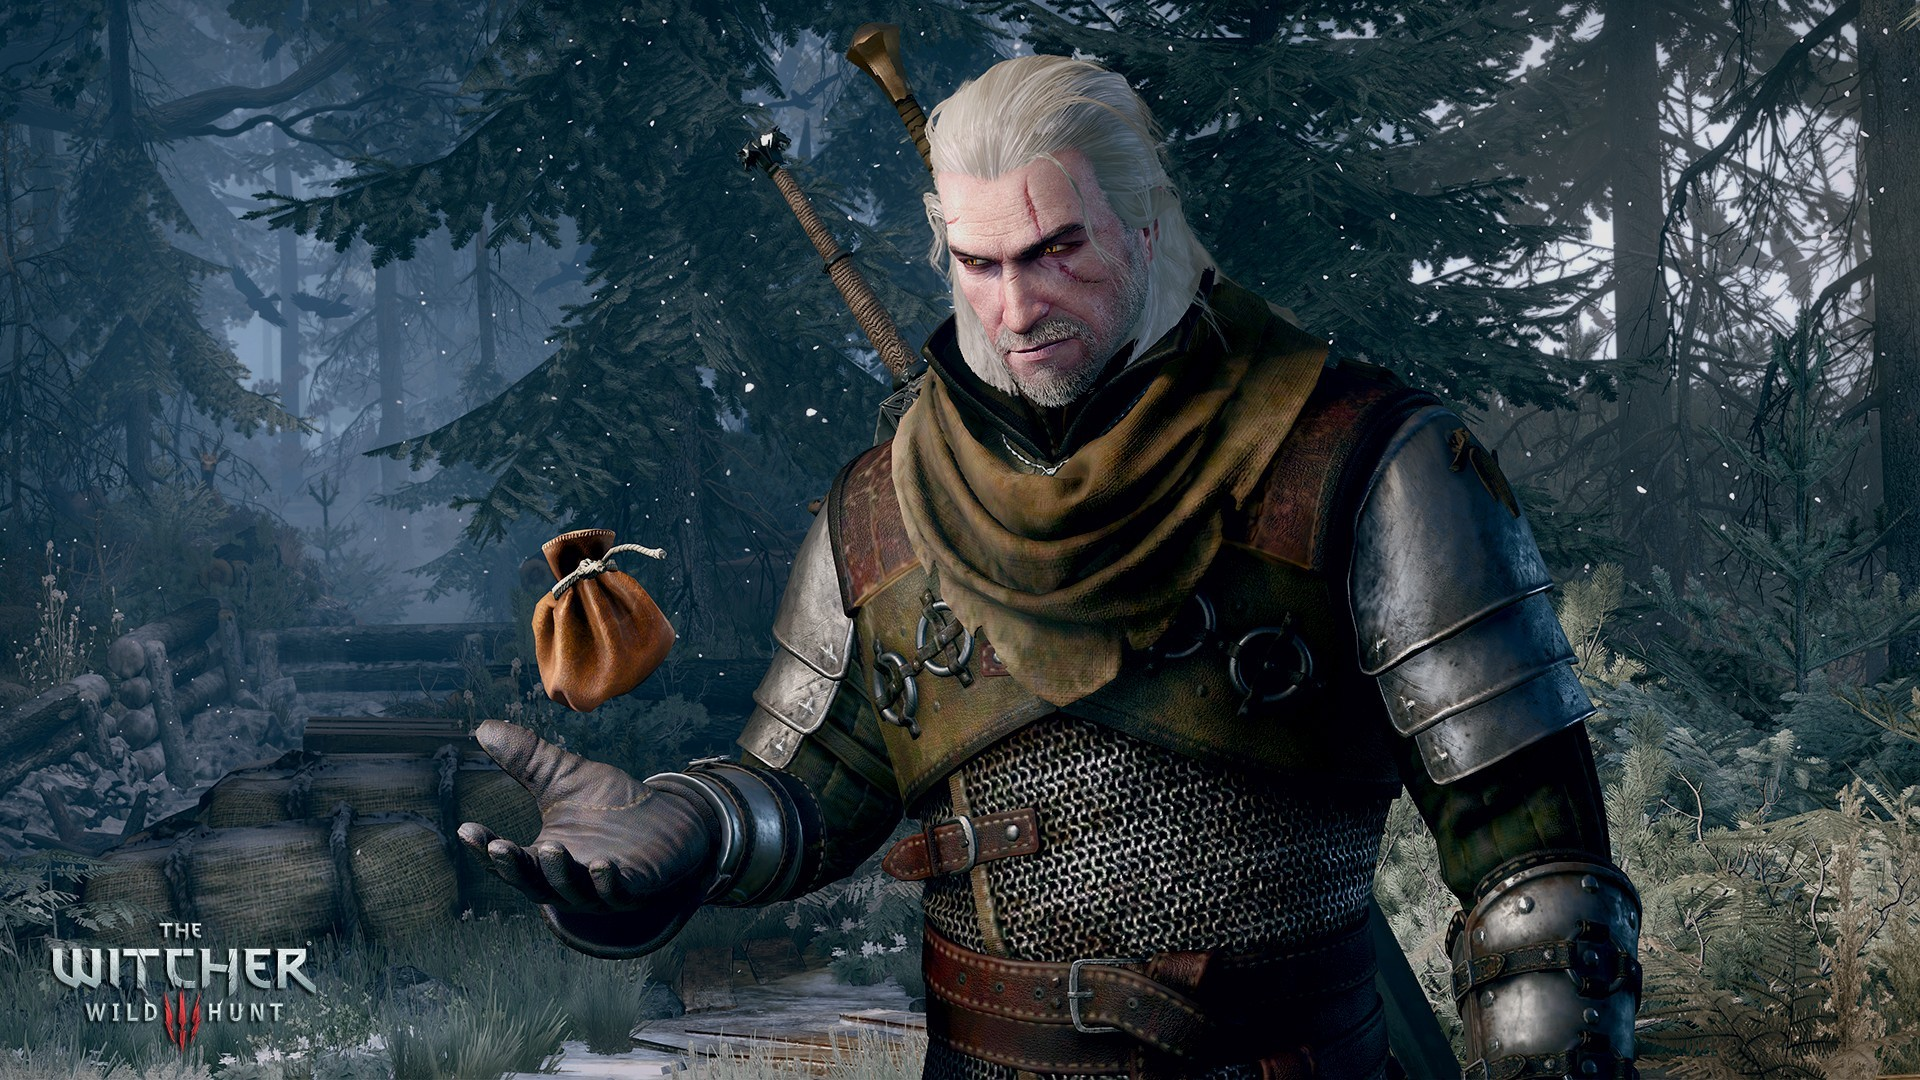 witcher 3 gone gold Witcher 3 Devs Reveal Profits For First Half Of 2016